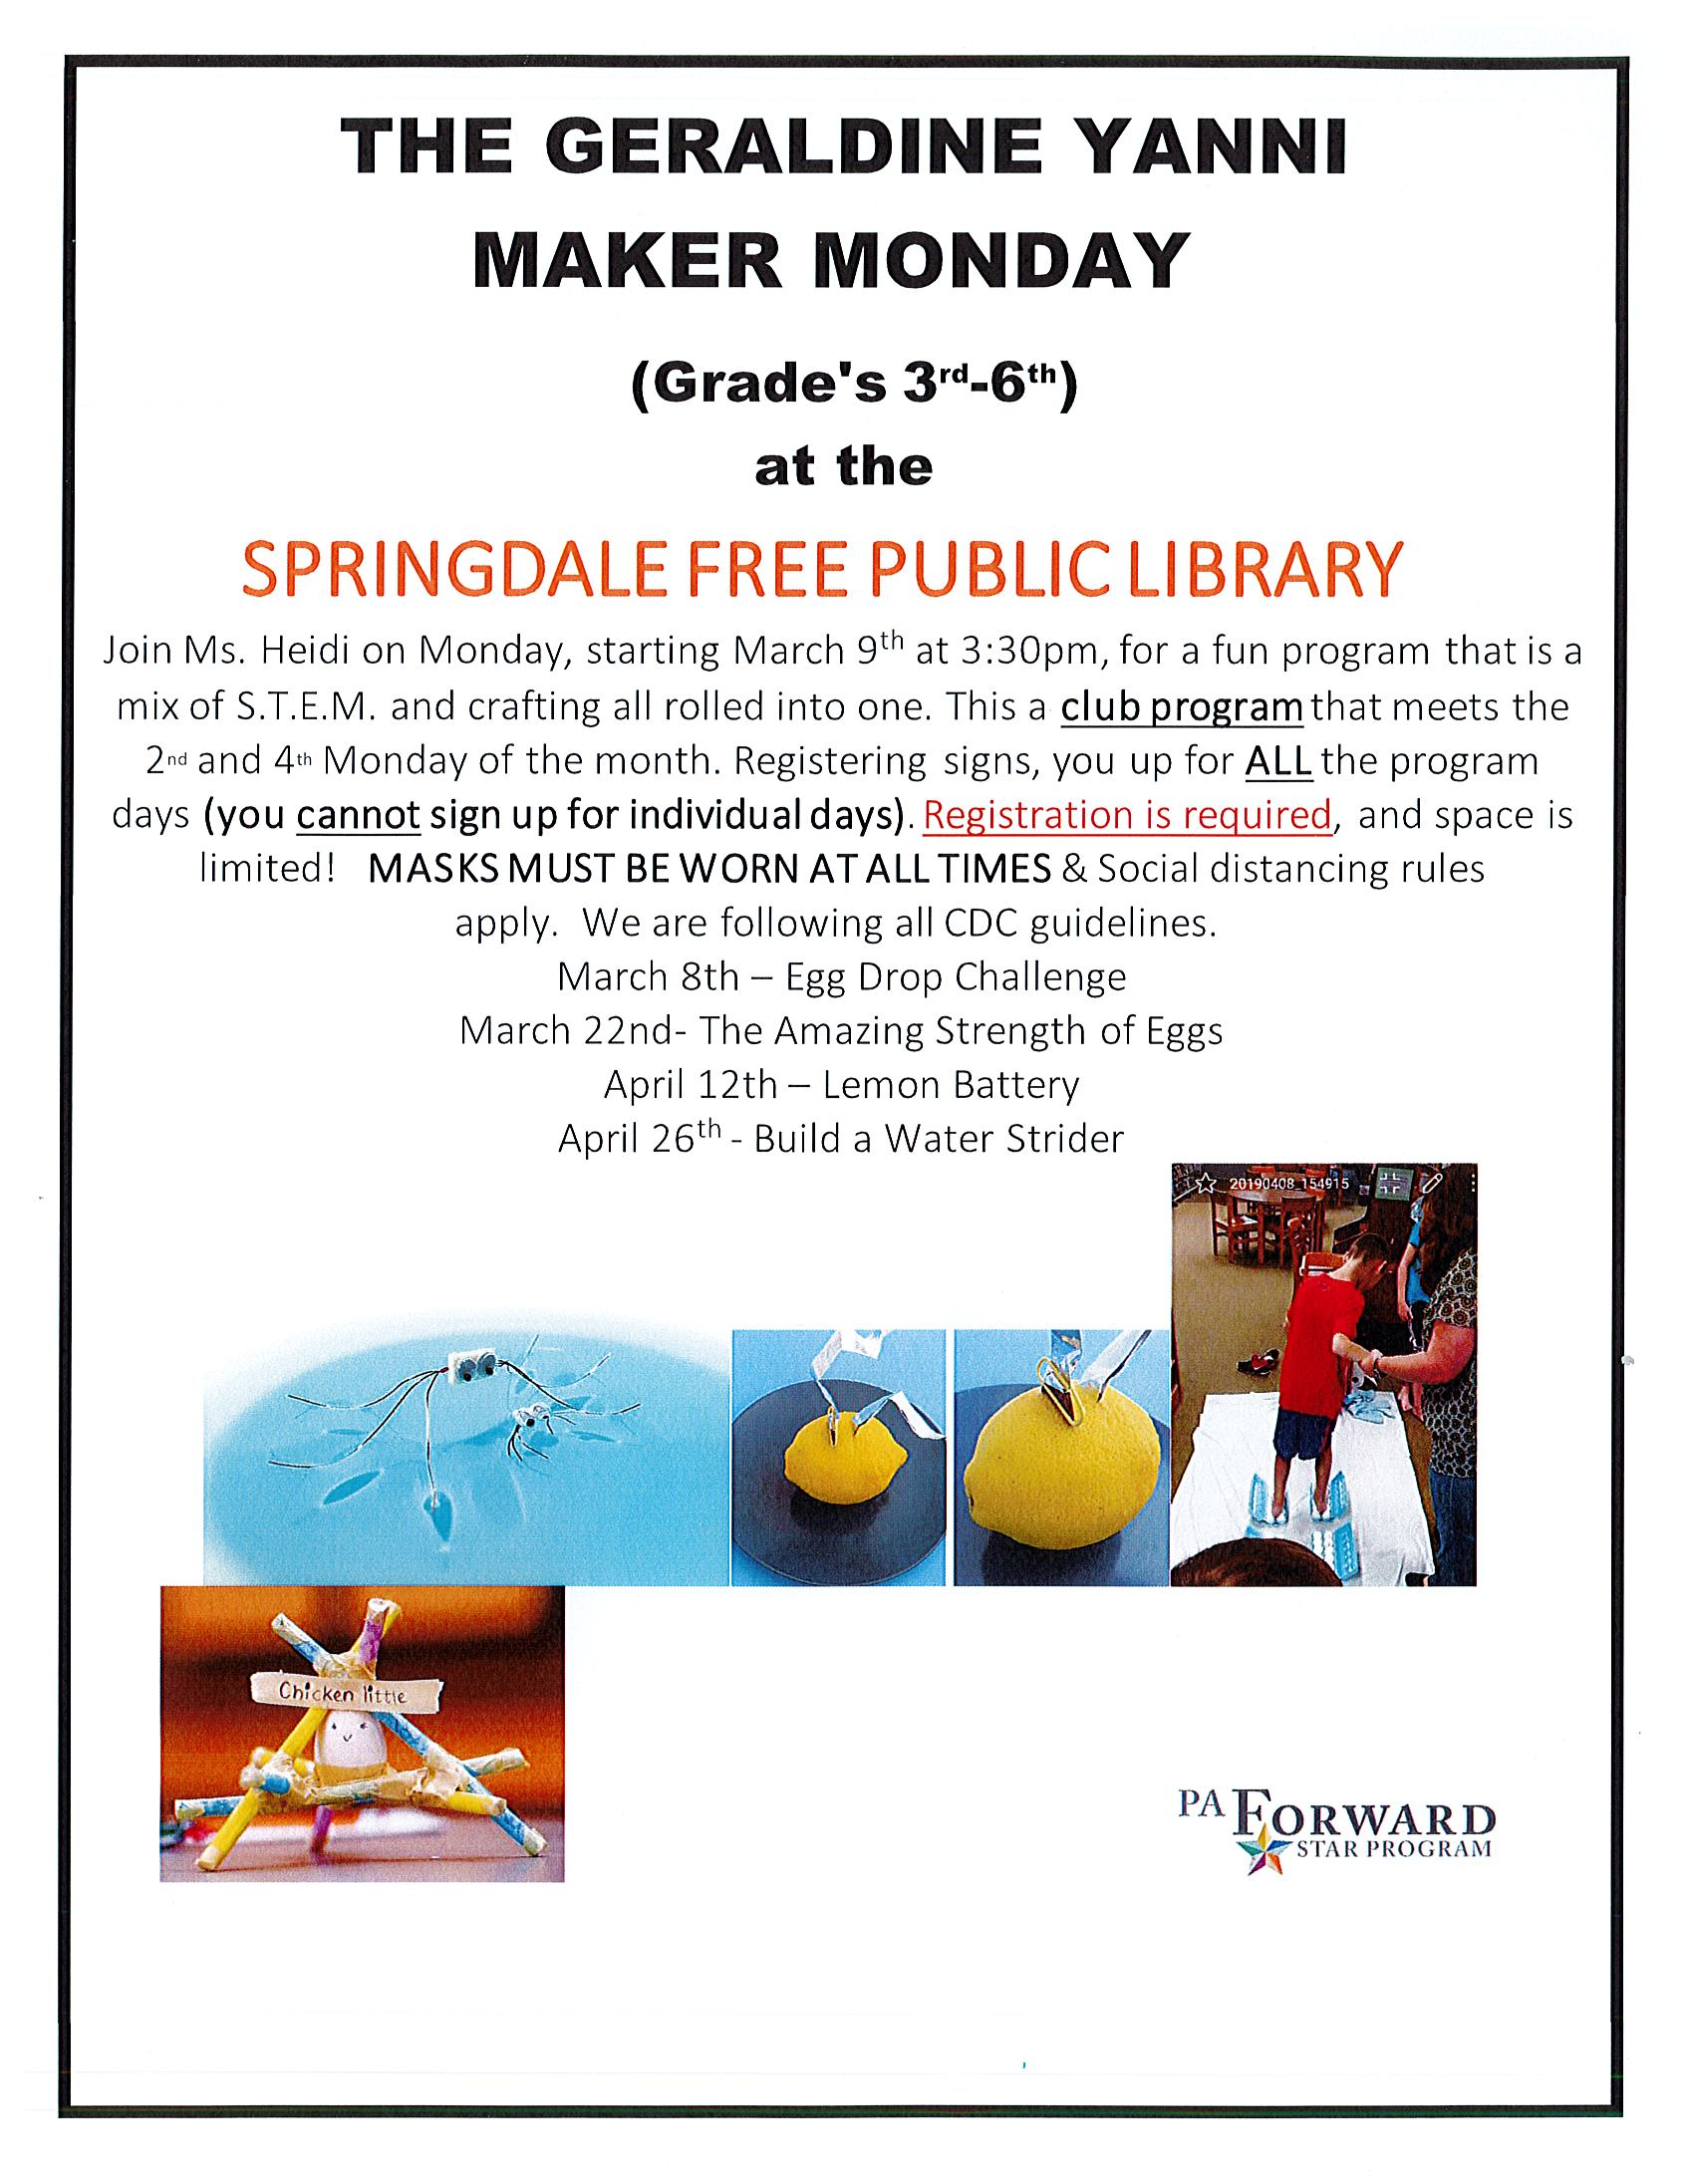 Maker Monday Starting back in March!!